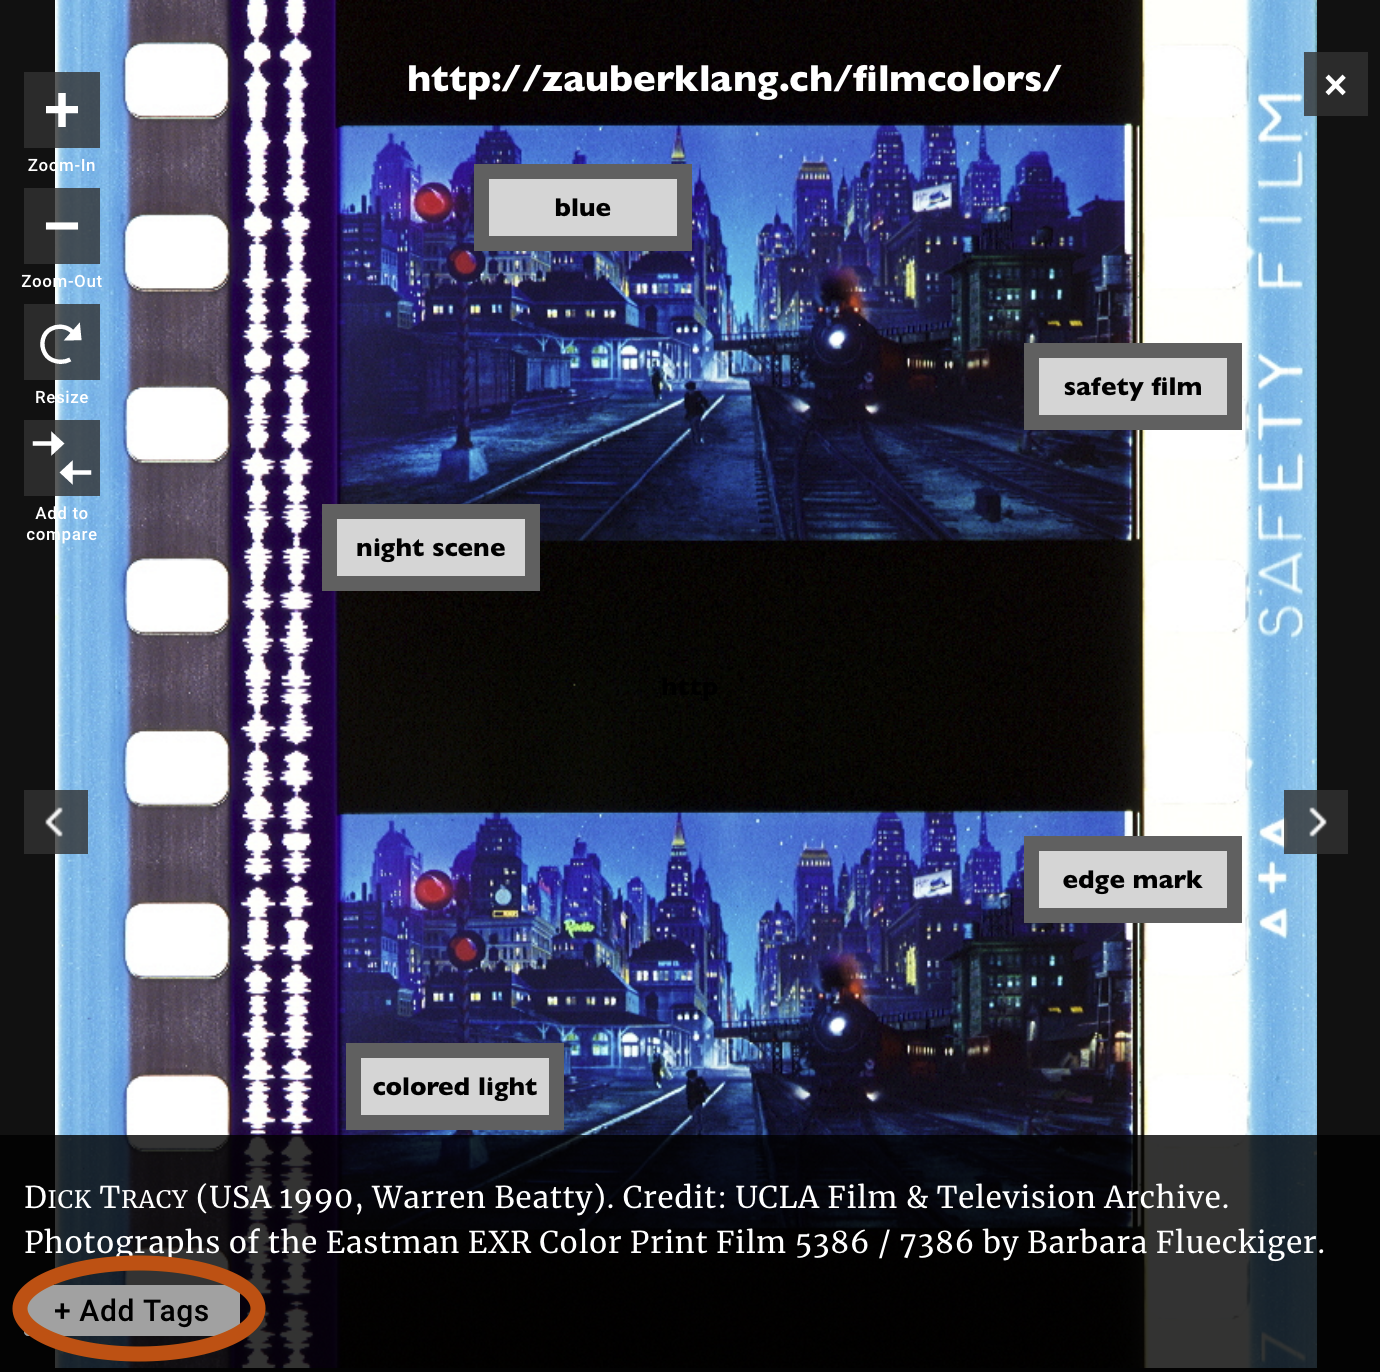 Add Your Own Tags to the Timeline of Historical Film Colors / Blog Post / Video Annotation